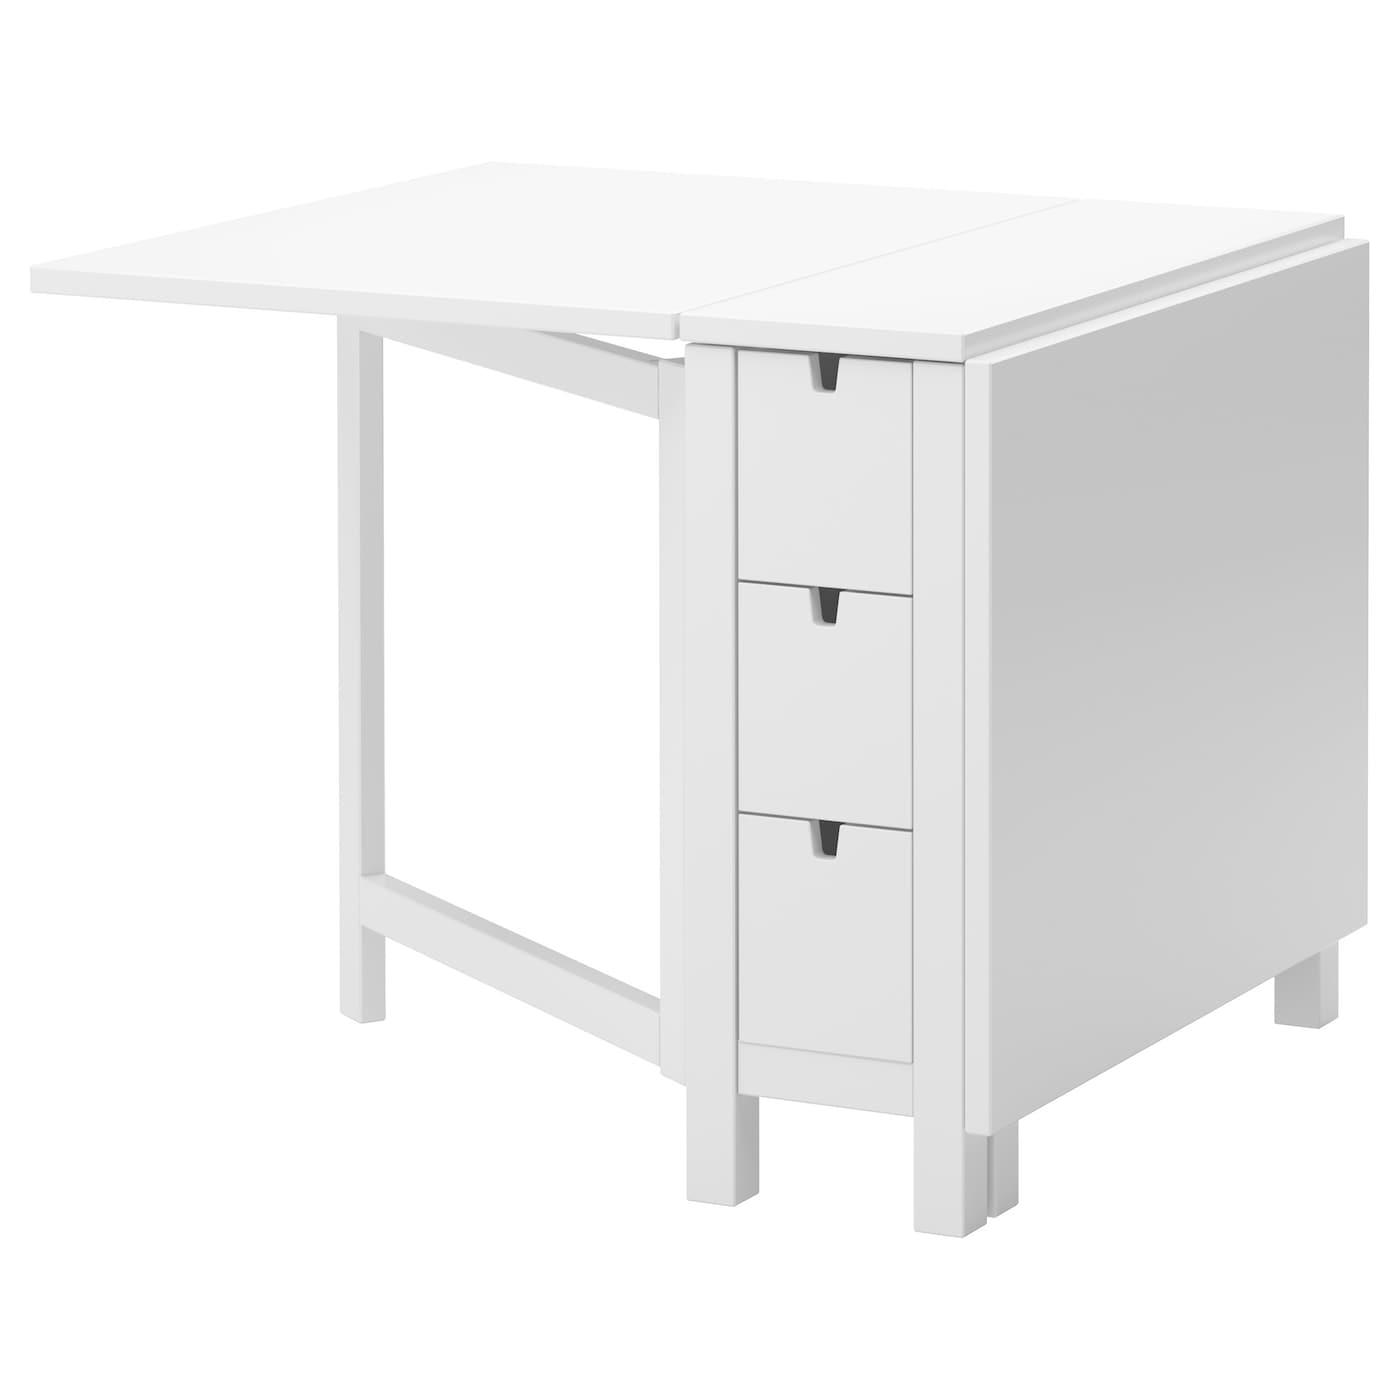 NORDEN Gateleg table White 26 89 152x80 cm IKEA